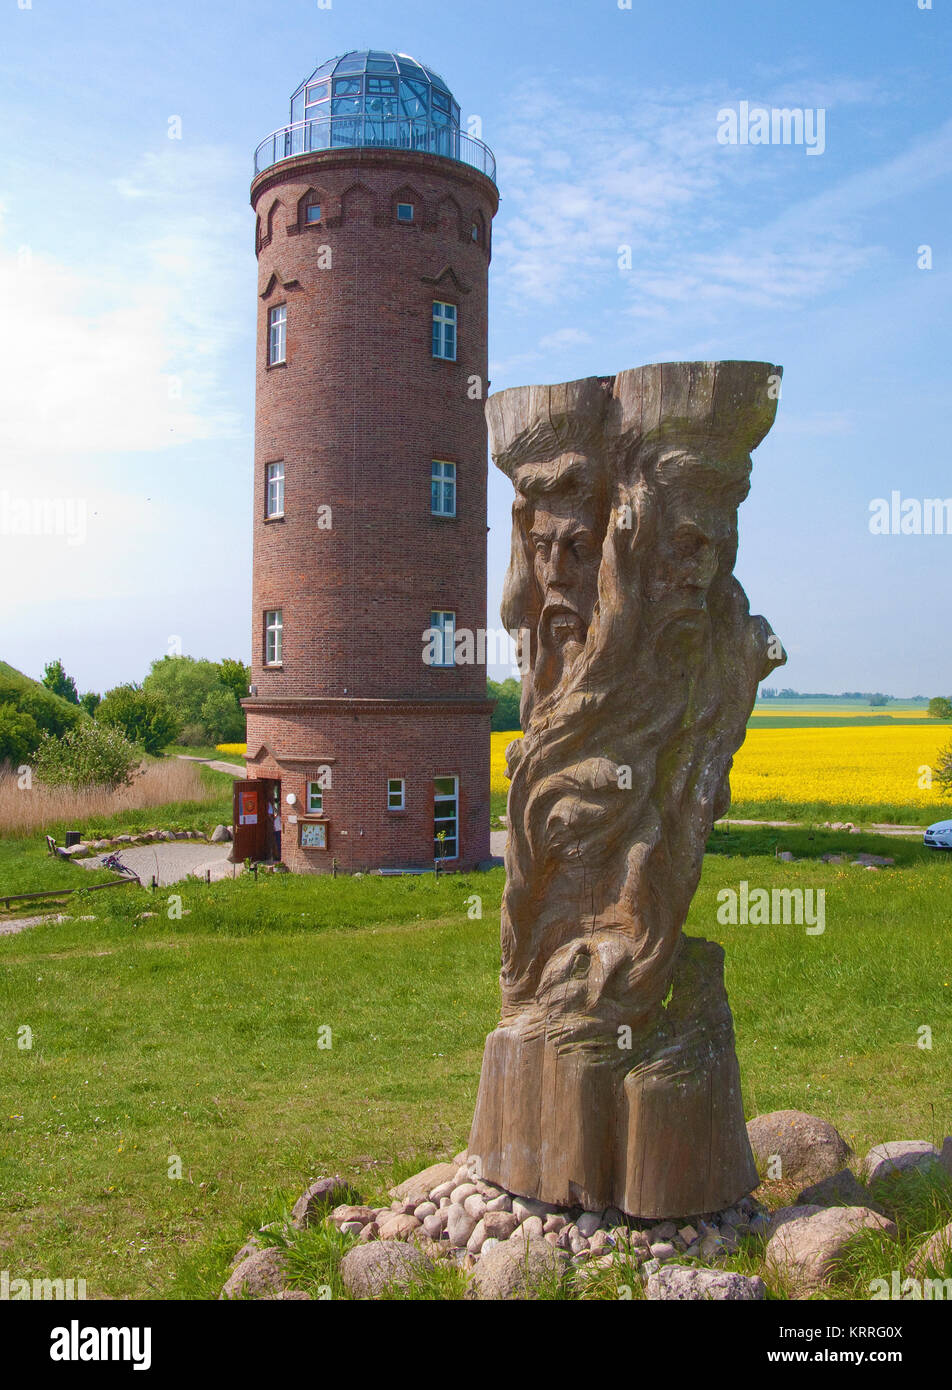 Svantovit, slavic god sculpture at the slavic castle, bearing tower, Cape Arkona, North cape, Ruegen island, Mecklenburg Stock Photo